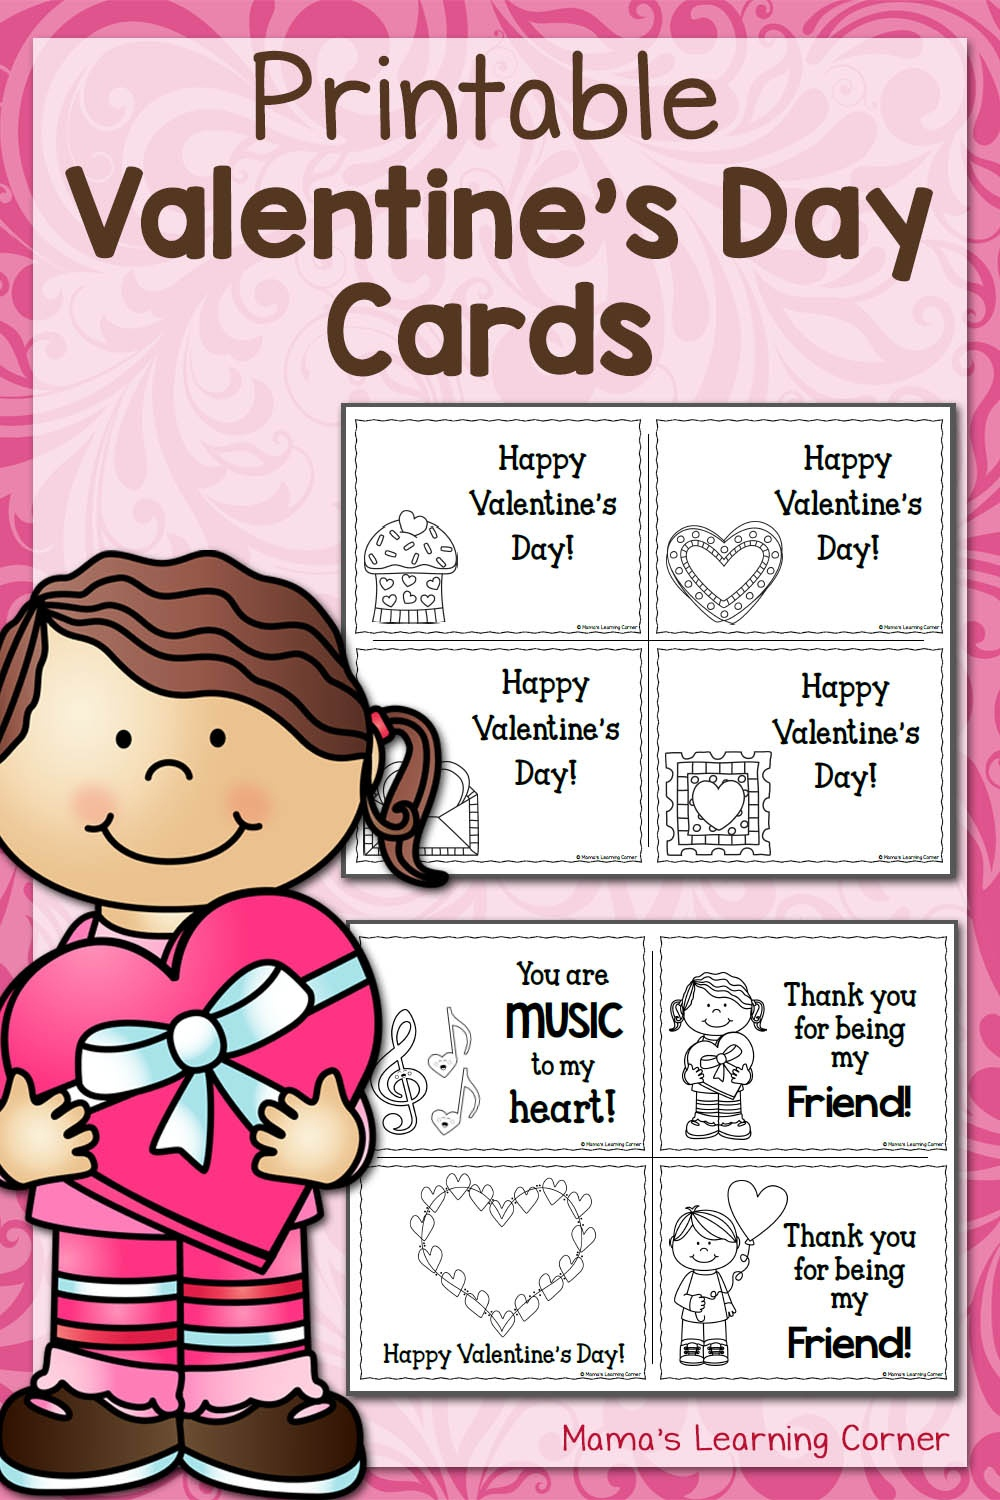 Printable Valentine's Day Cards - Mamas Learning Corner - Free Printable Valentines Day Cards Kids